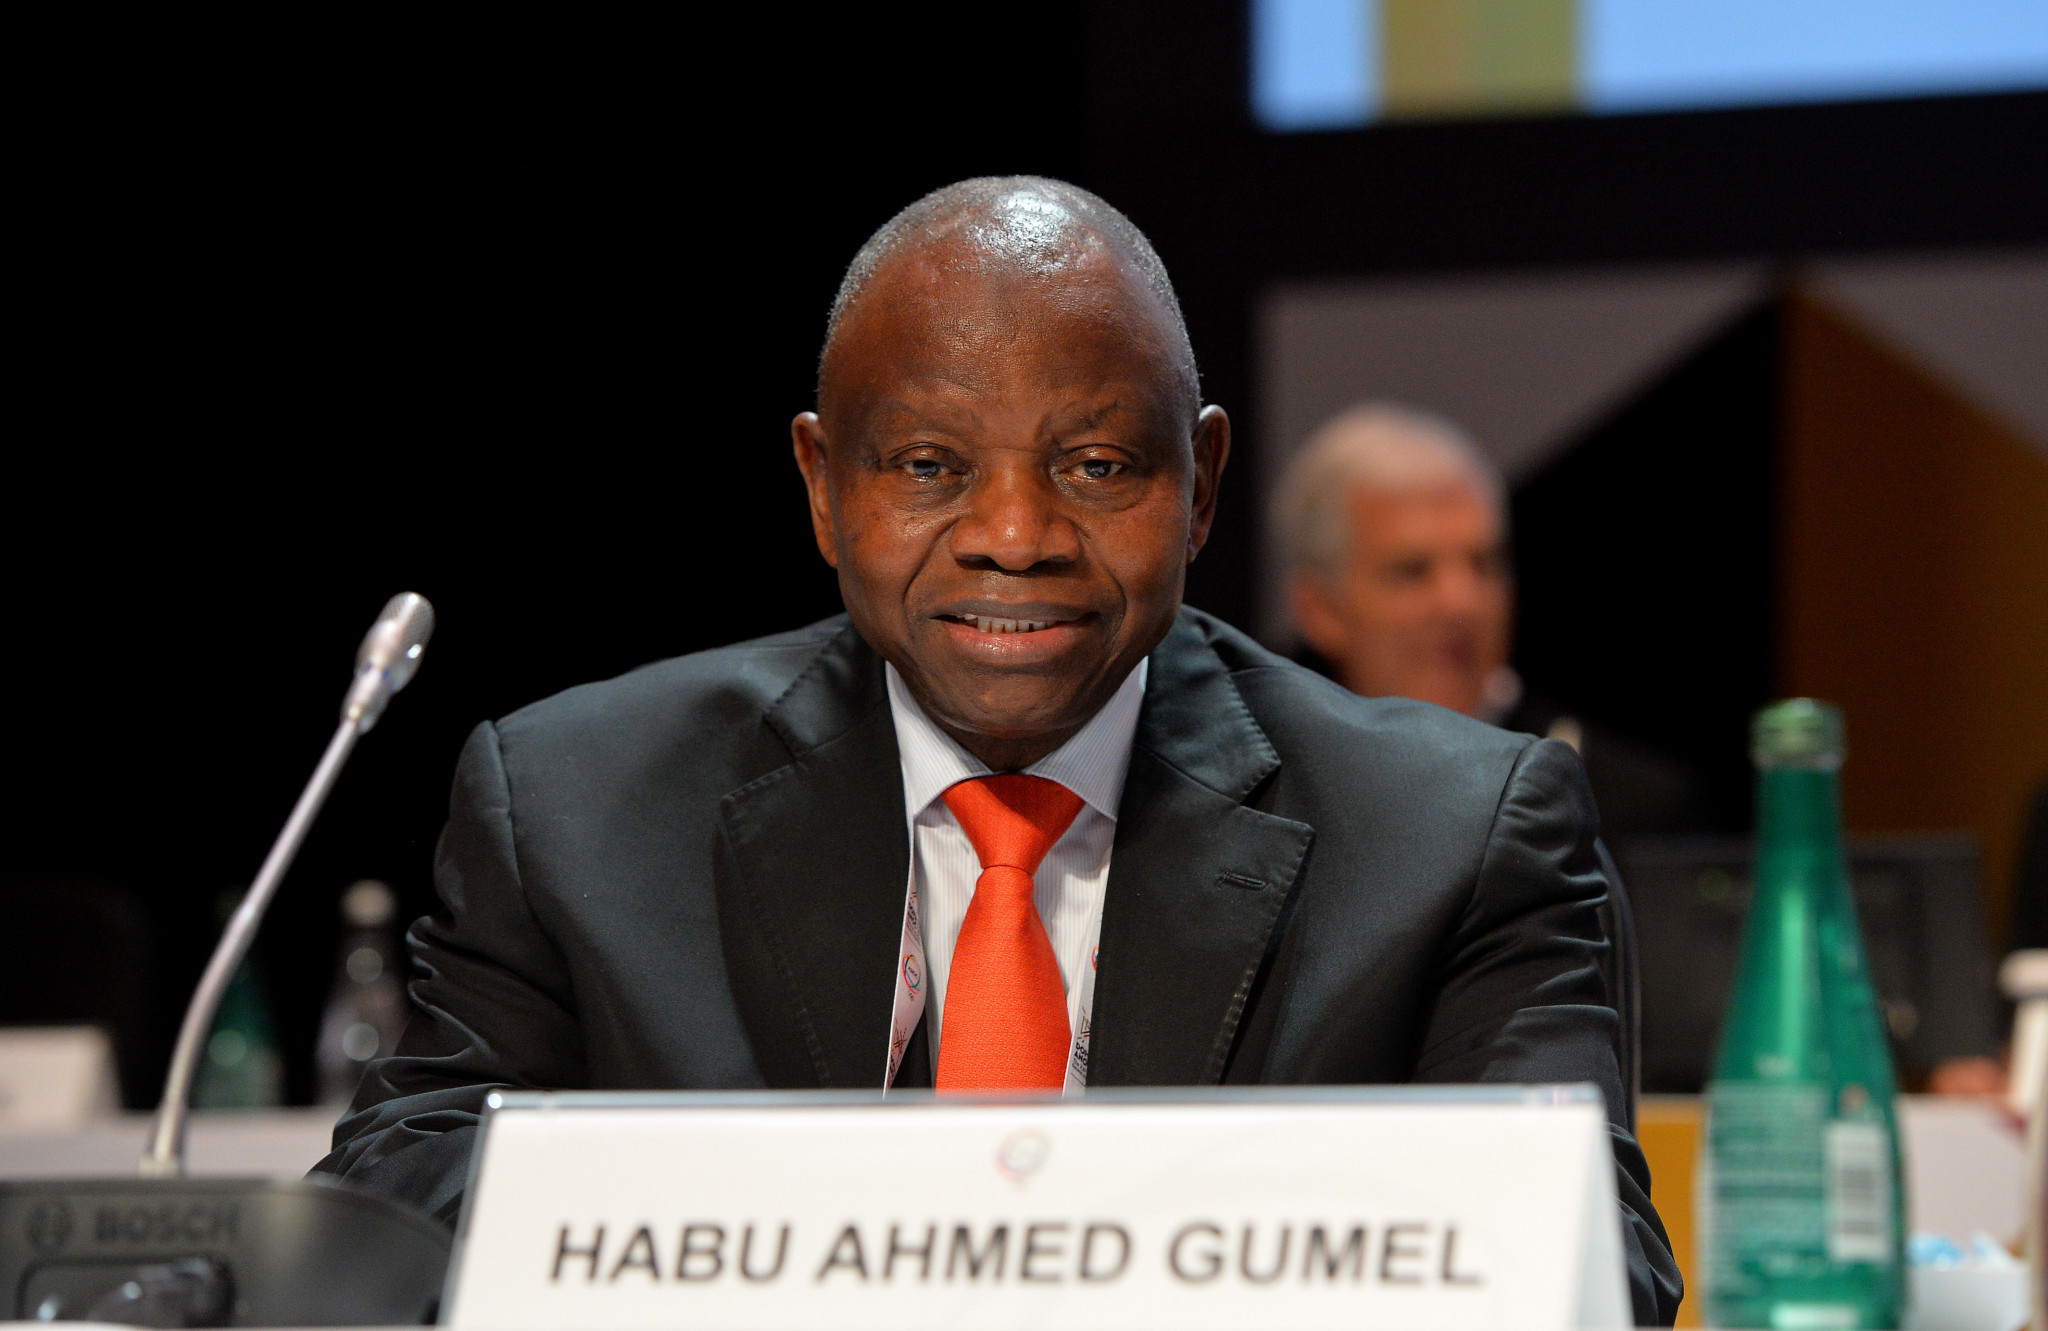 Habu Gumel, head of both the Nigeria Olympic Committee and Nigeria Teqball Federation, wants to develop the game in Africa ©Getty Images